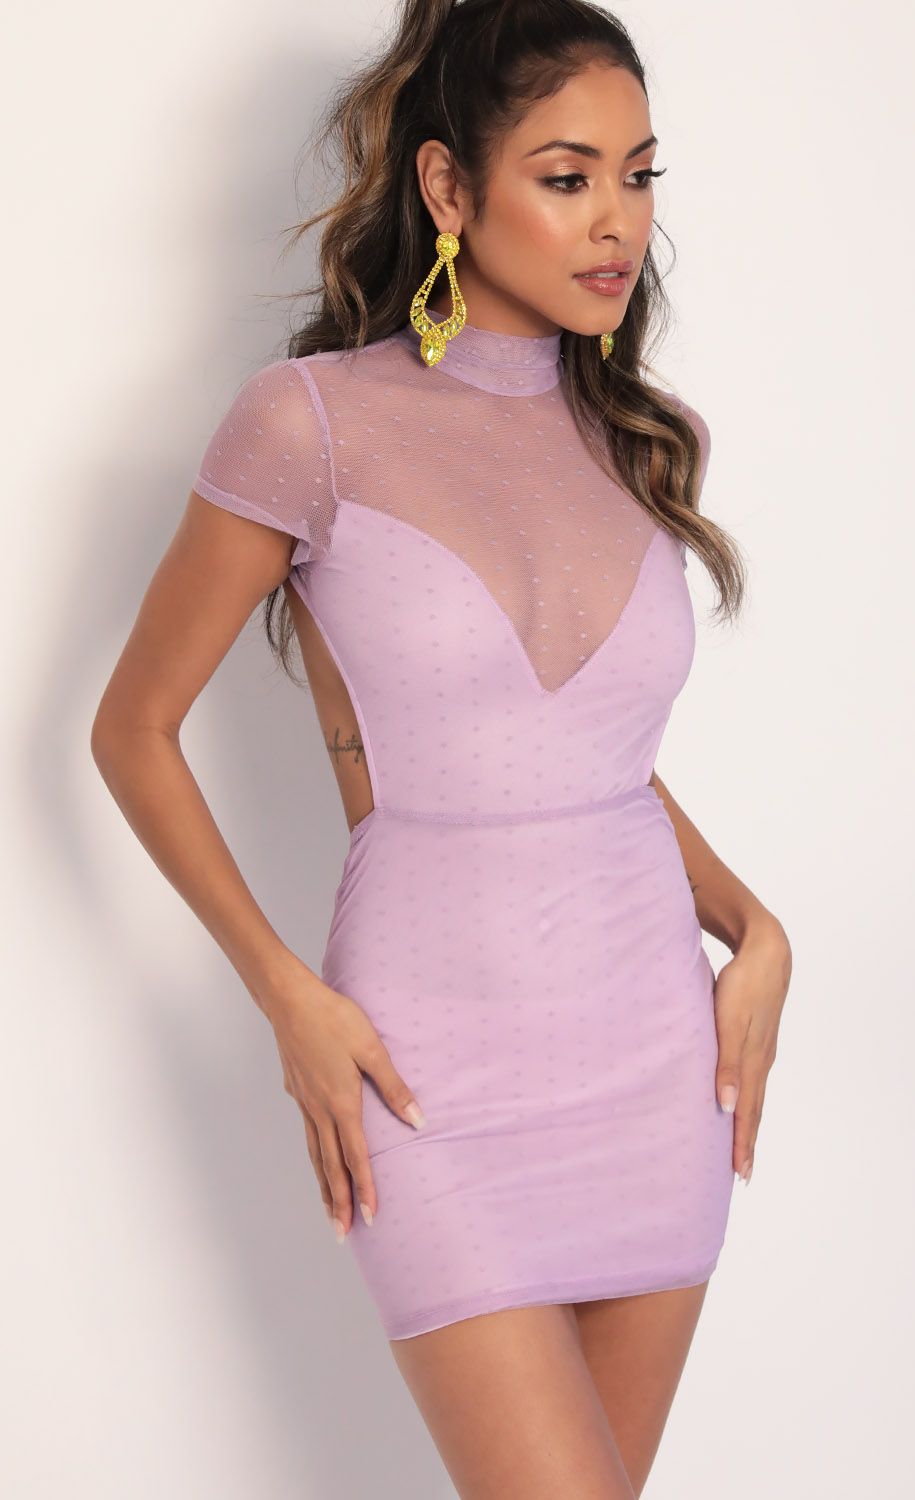 Callie Polka Dot Mesh Dress in Lilac